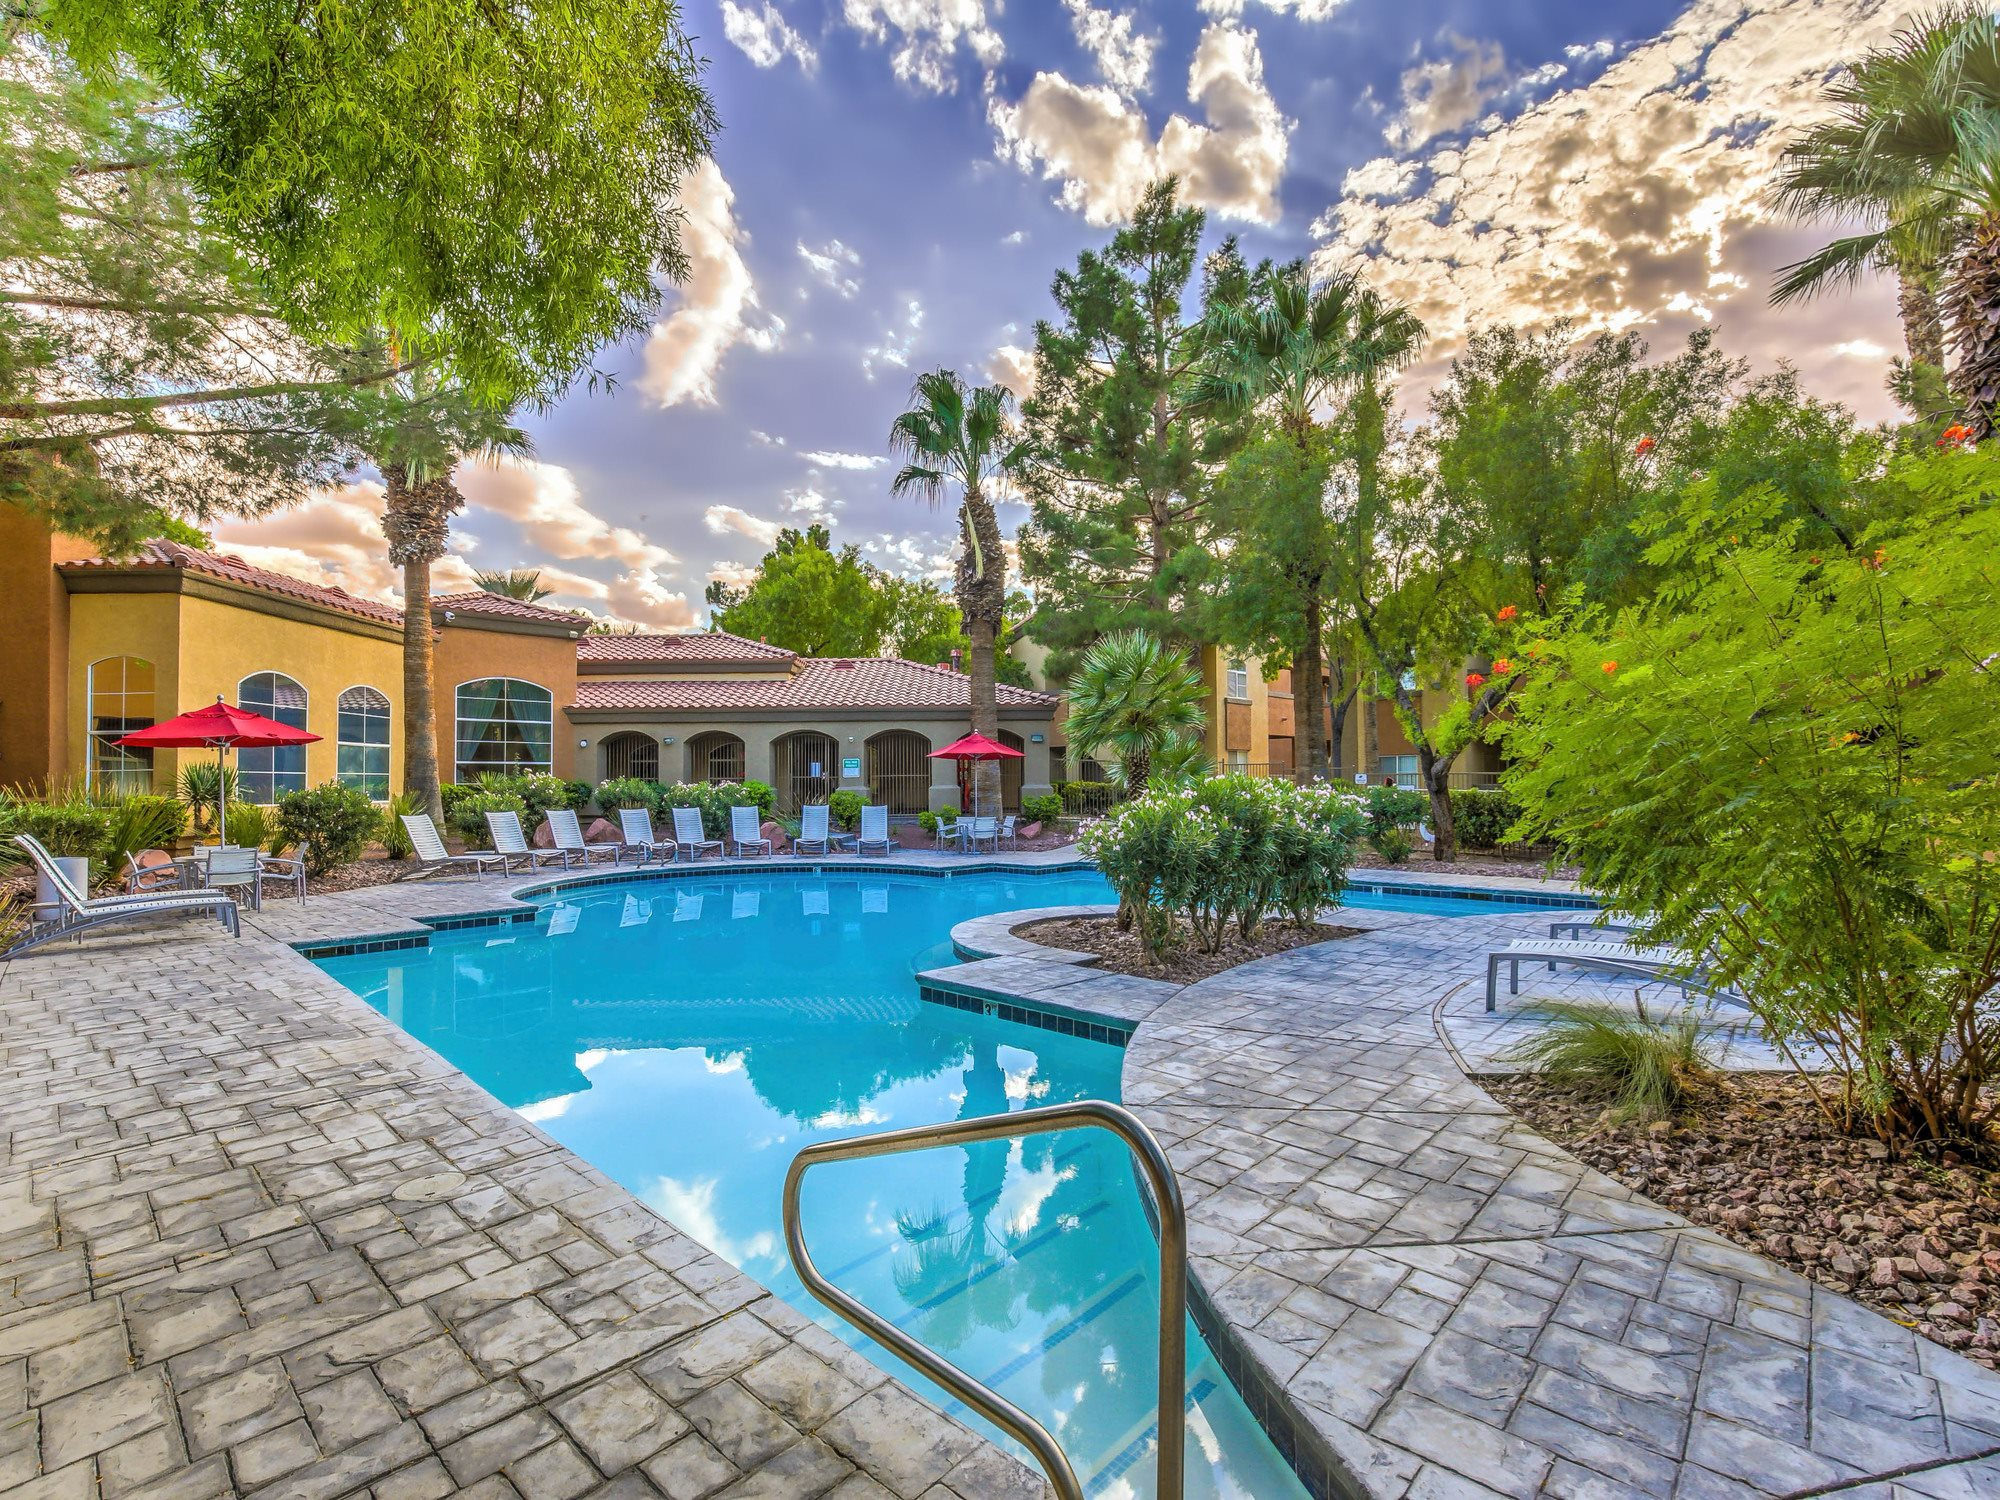 Resort-Style Zero-Entry Pool at Collage Apartments, Las Vegas, NV 89108